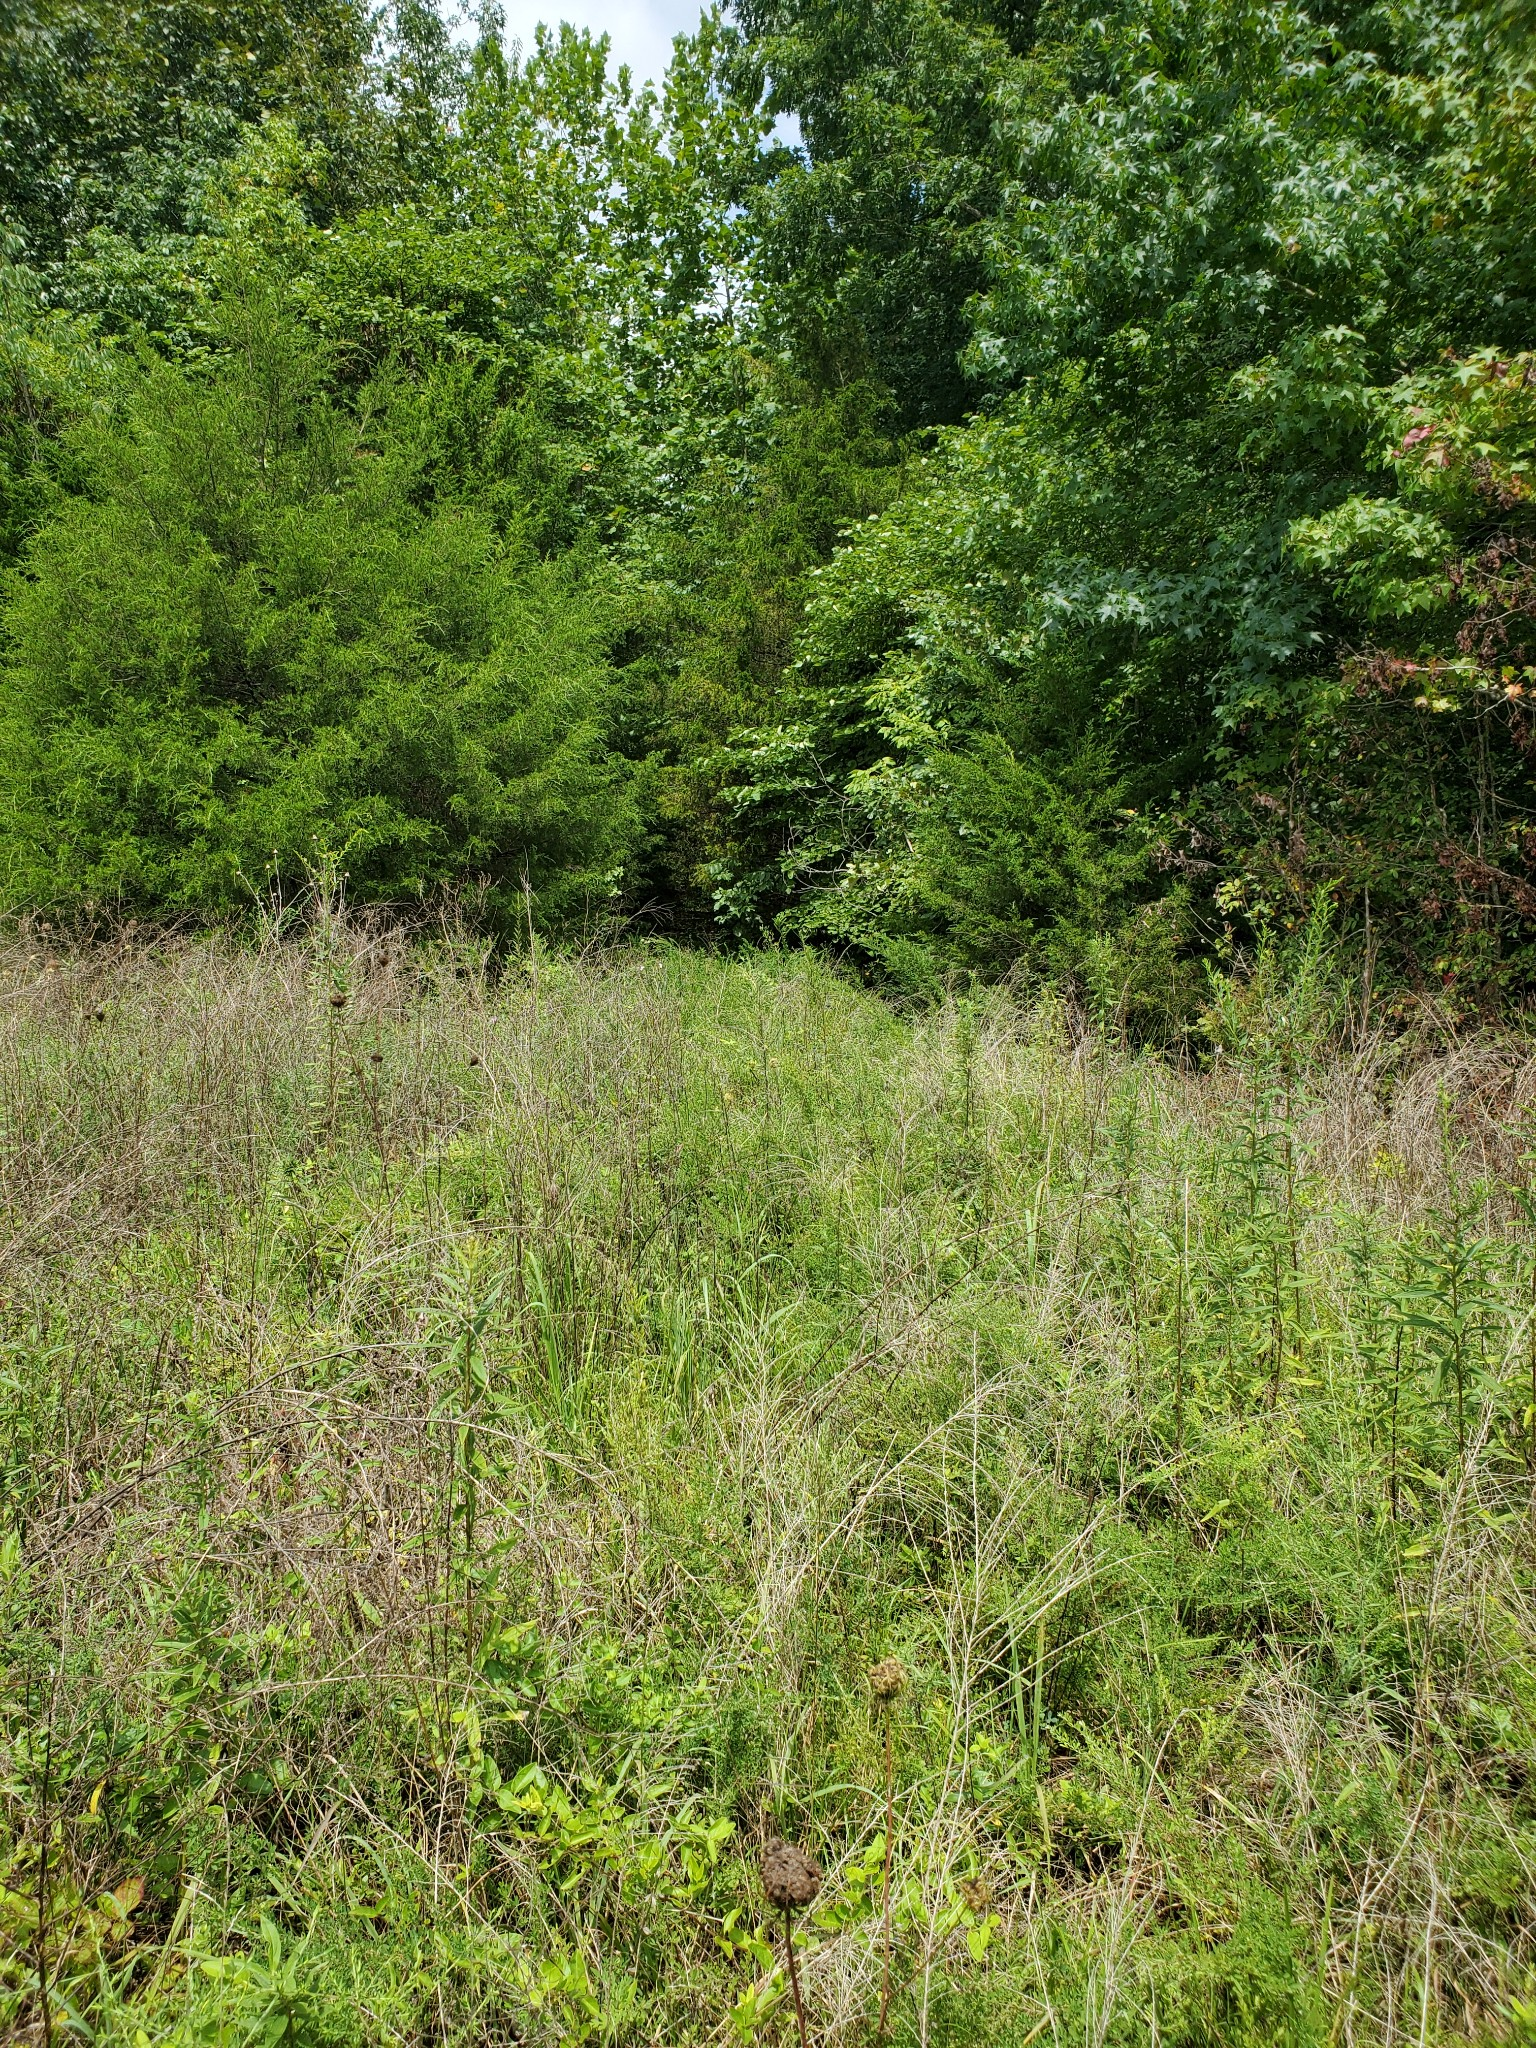 0 Robert Elliot Rd. Property Photo - Cedar Hill, TN real estate listing